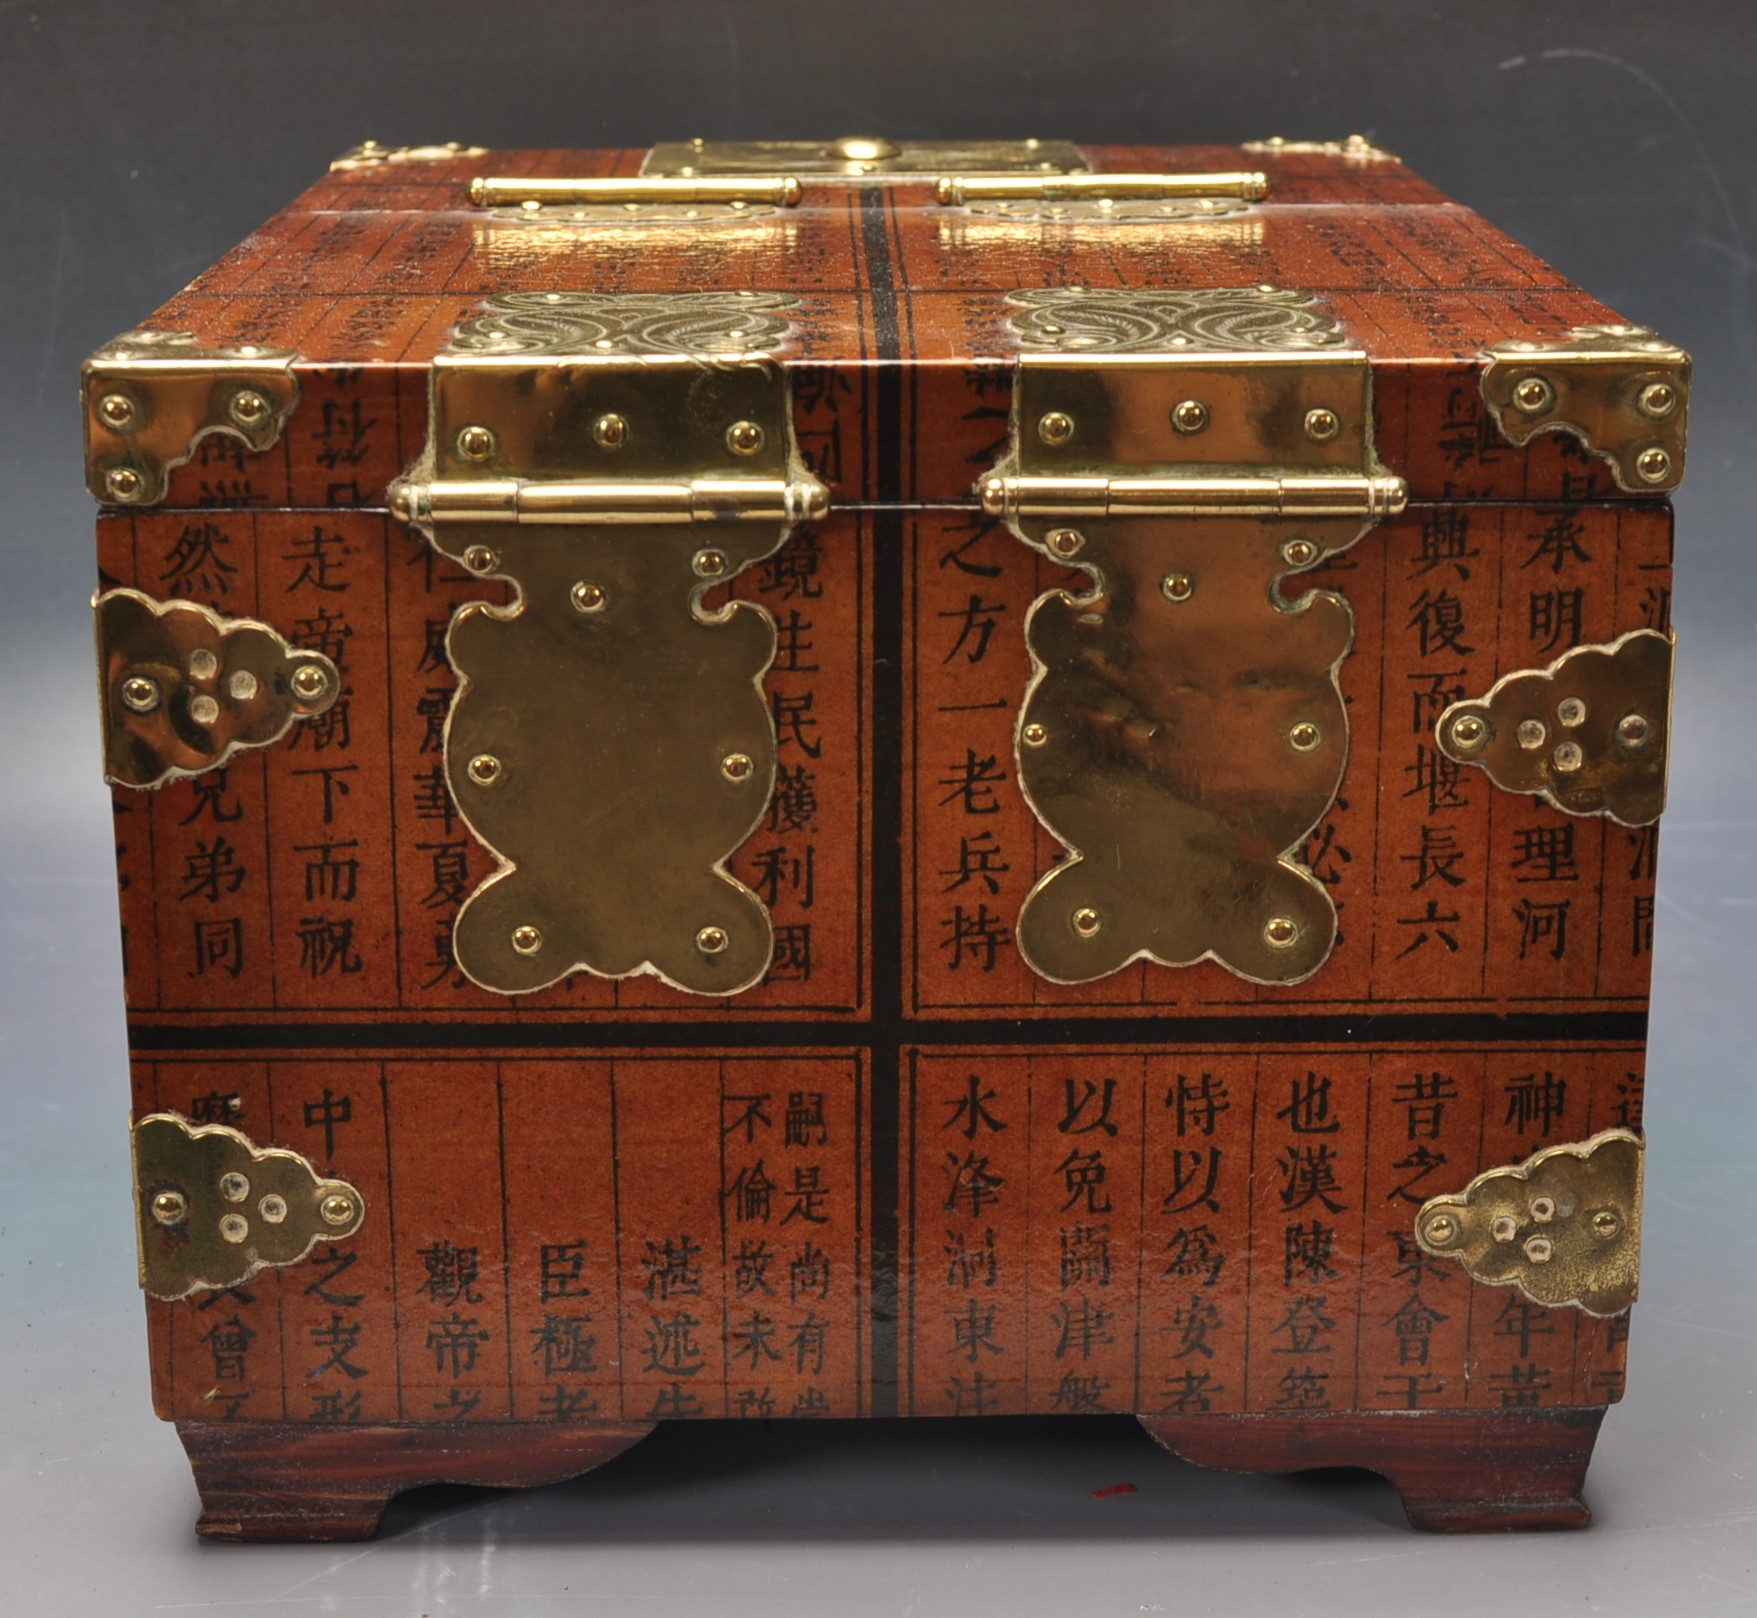 20TH CENTURY CHINESE LACQUER & BRASS BOUND CASKET - Image 4 of 4